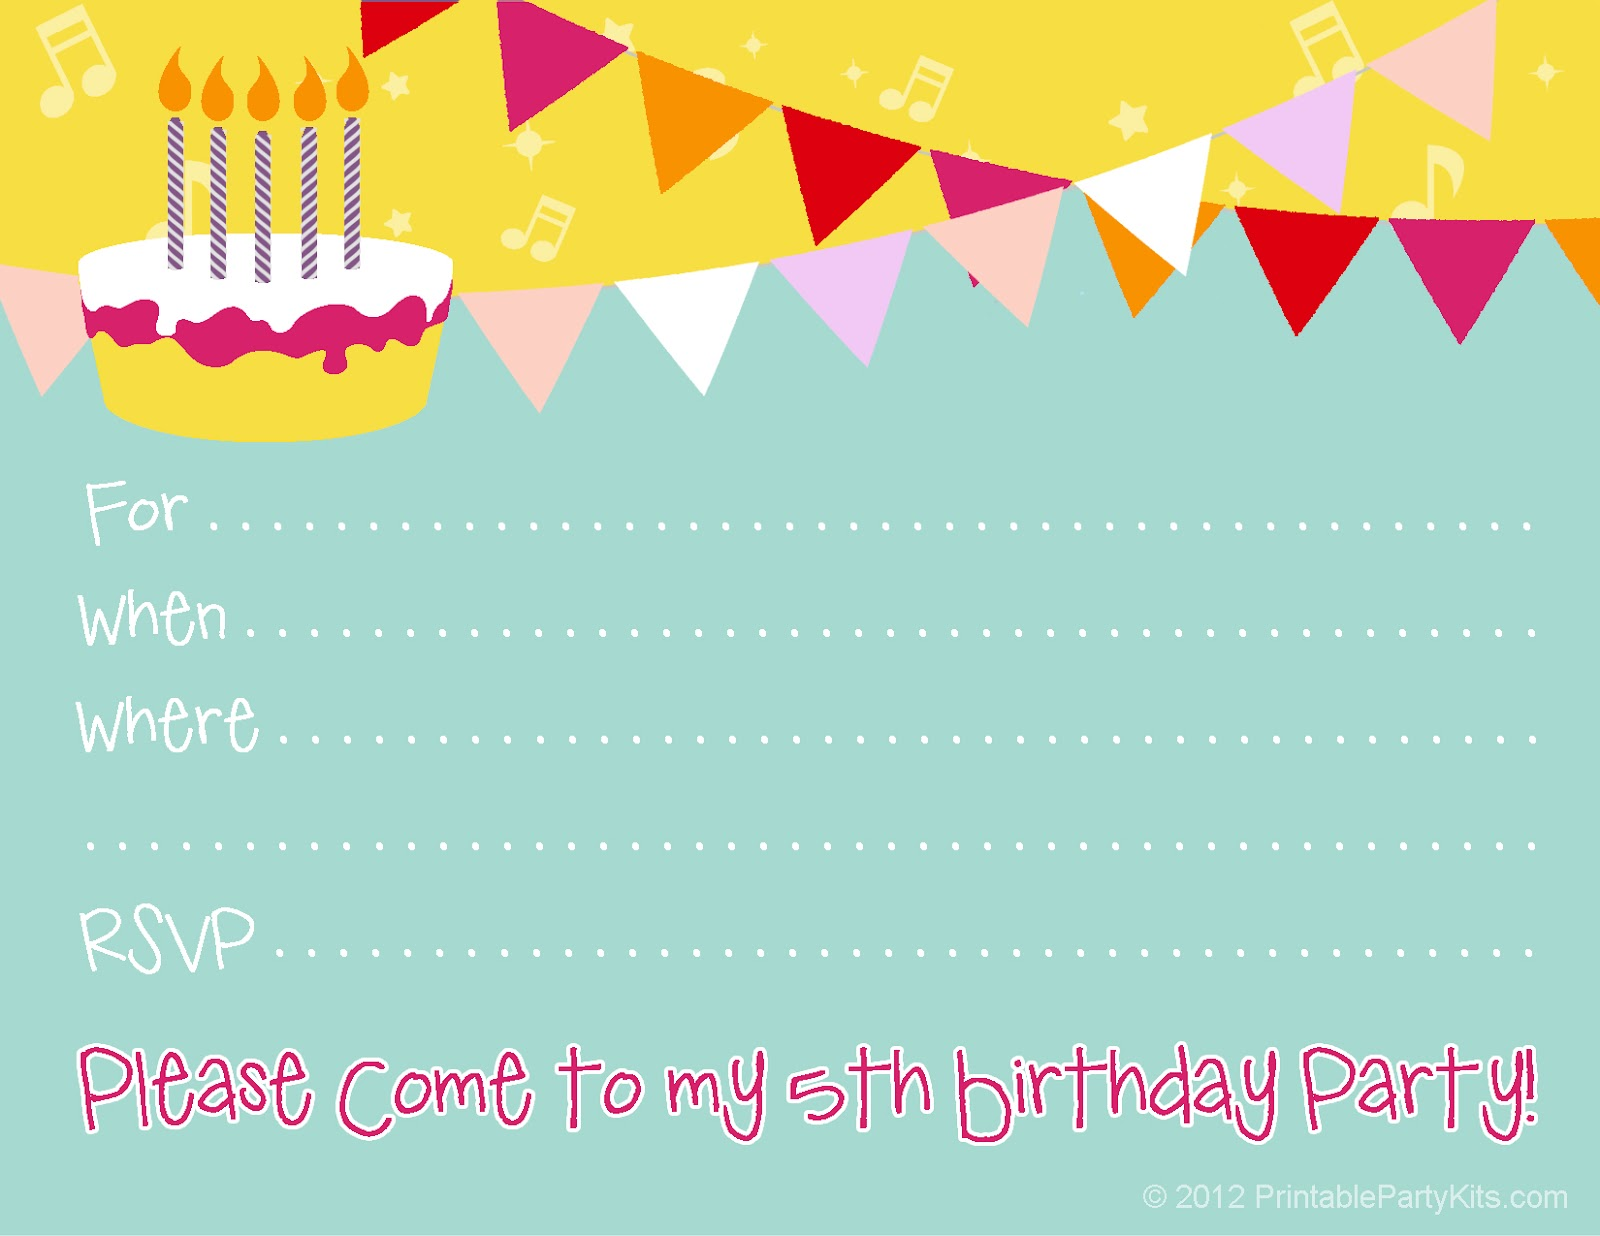 Free birthday party invitation template robertottni free birthday party invitation template stopboris Choice Image